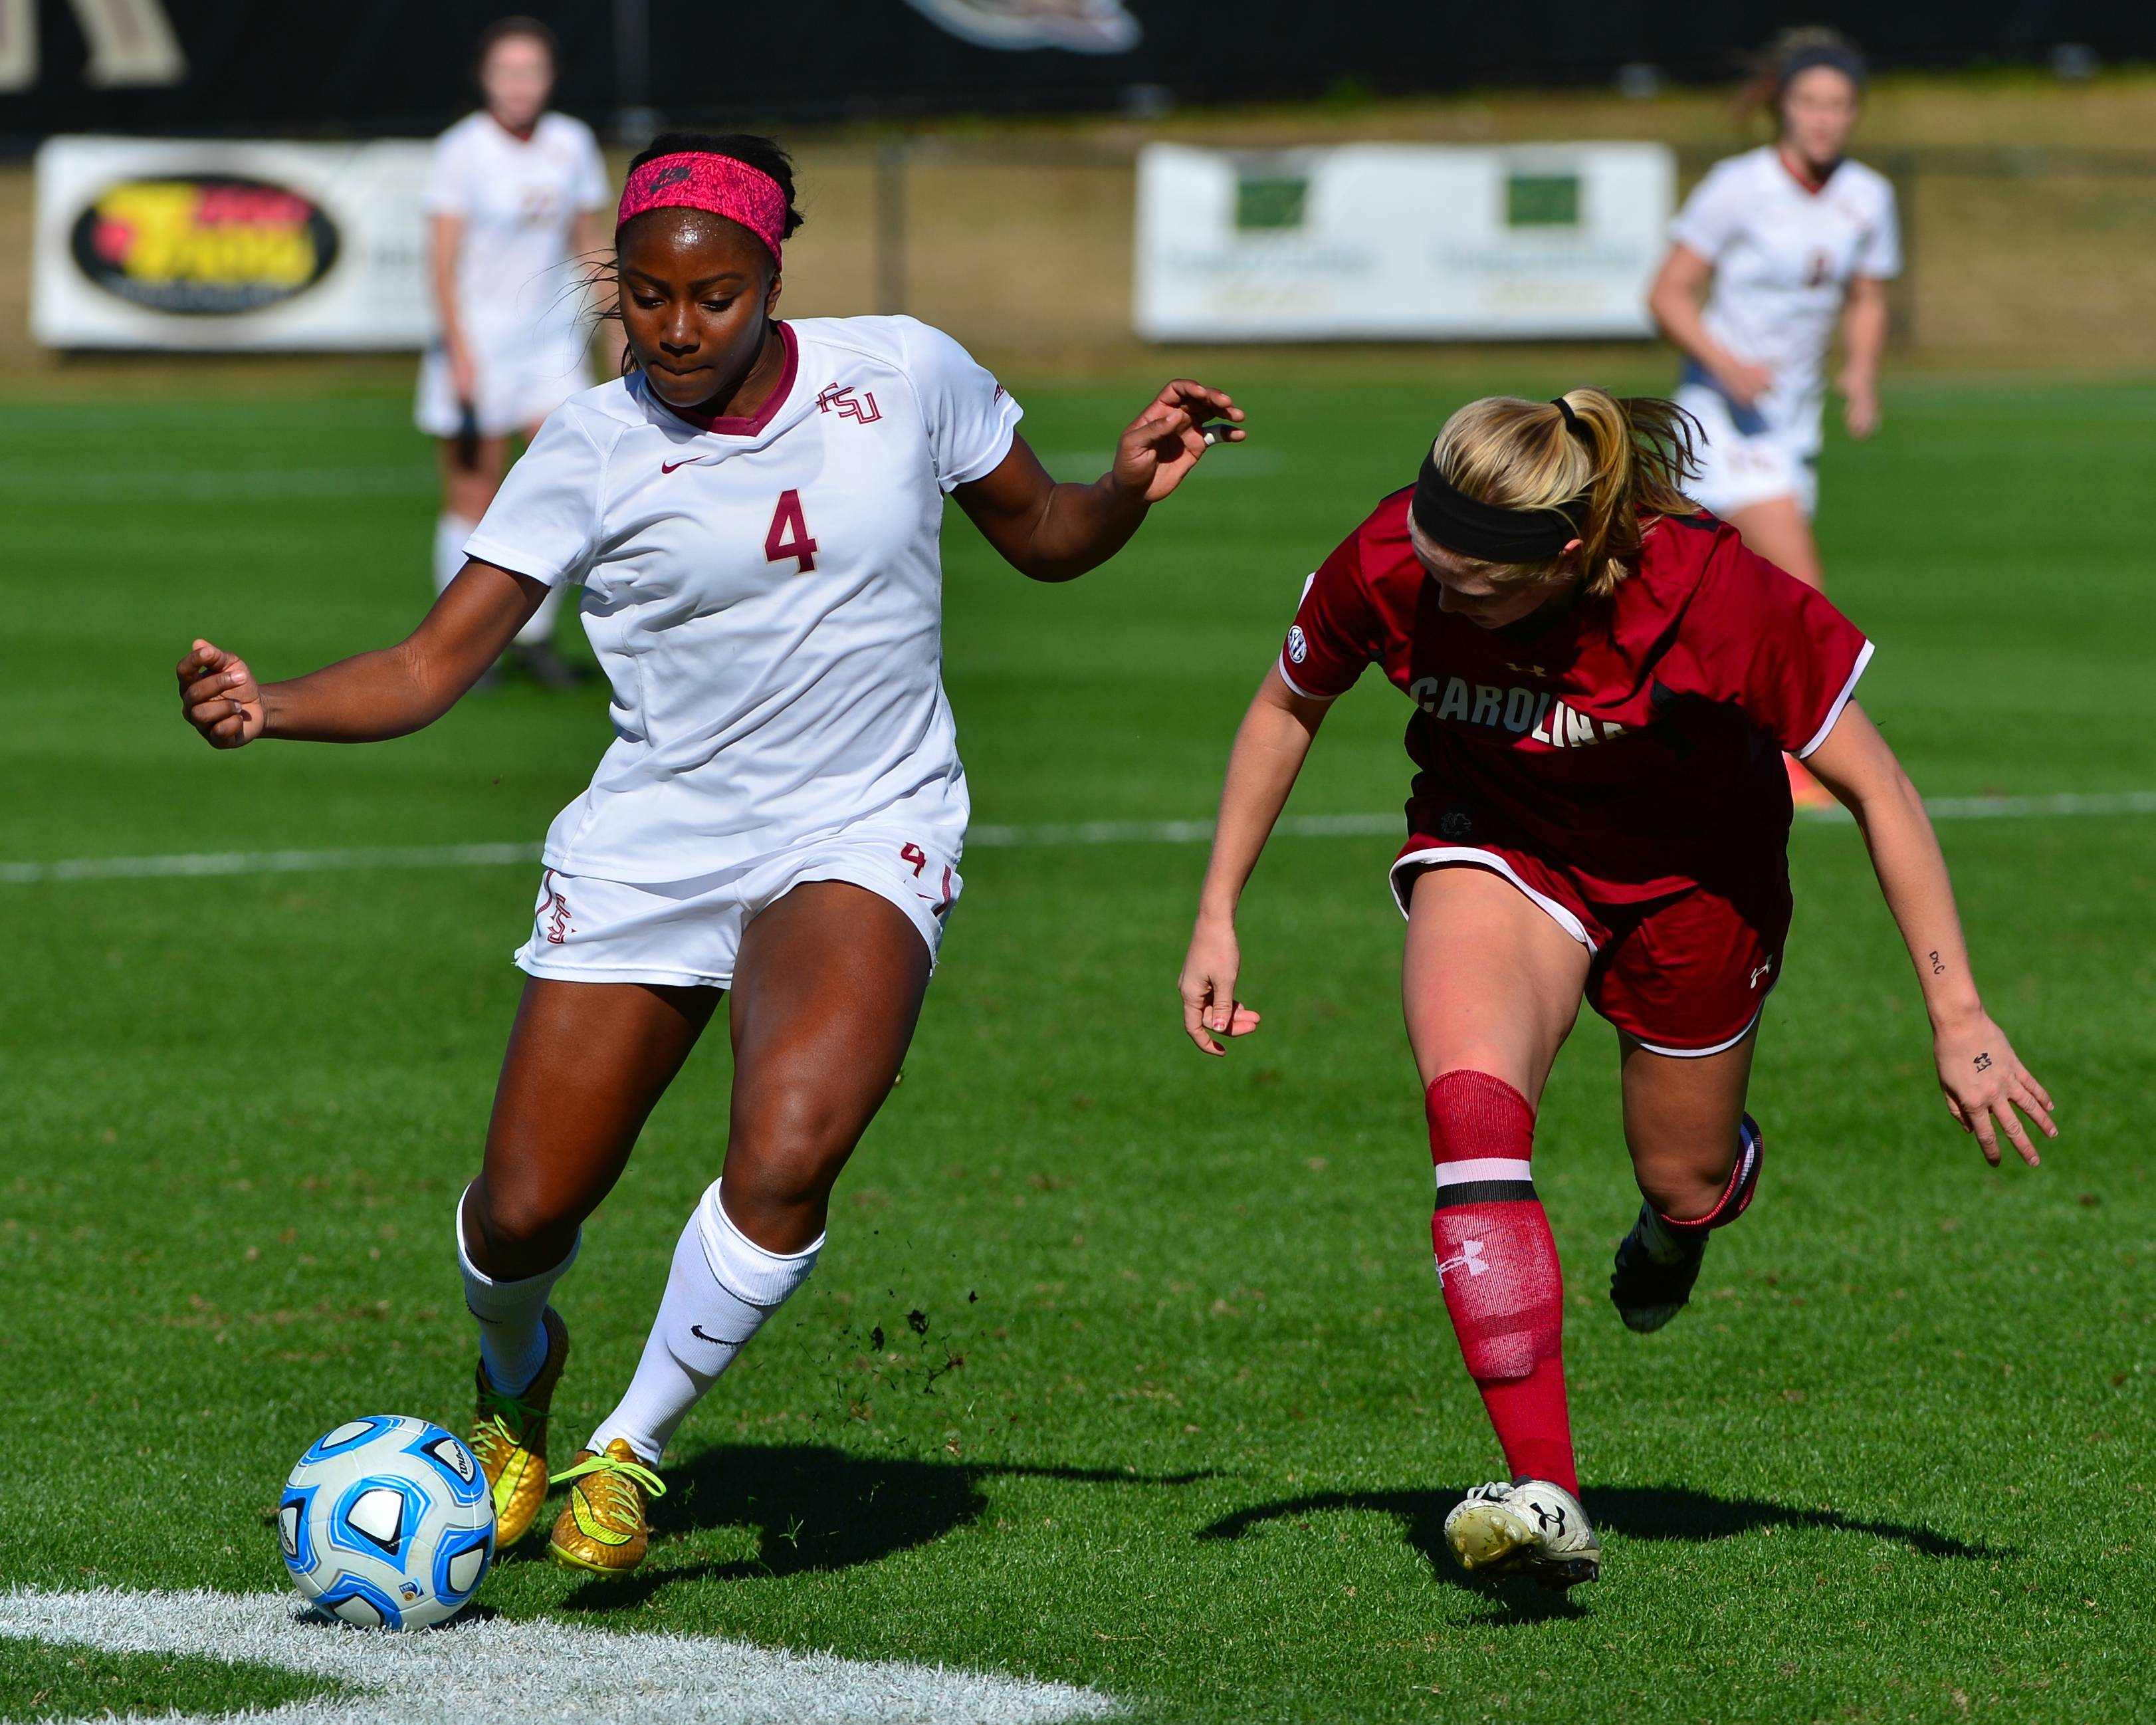 Florida State vs South Carolina – NCAA Women's Soccer Quarterfinals